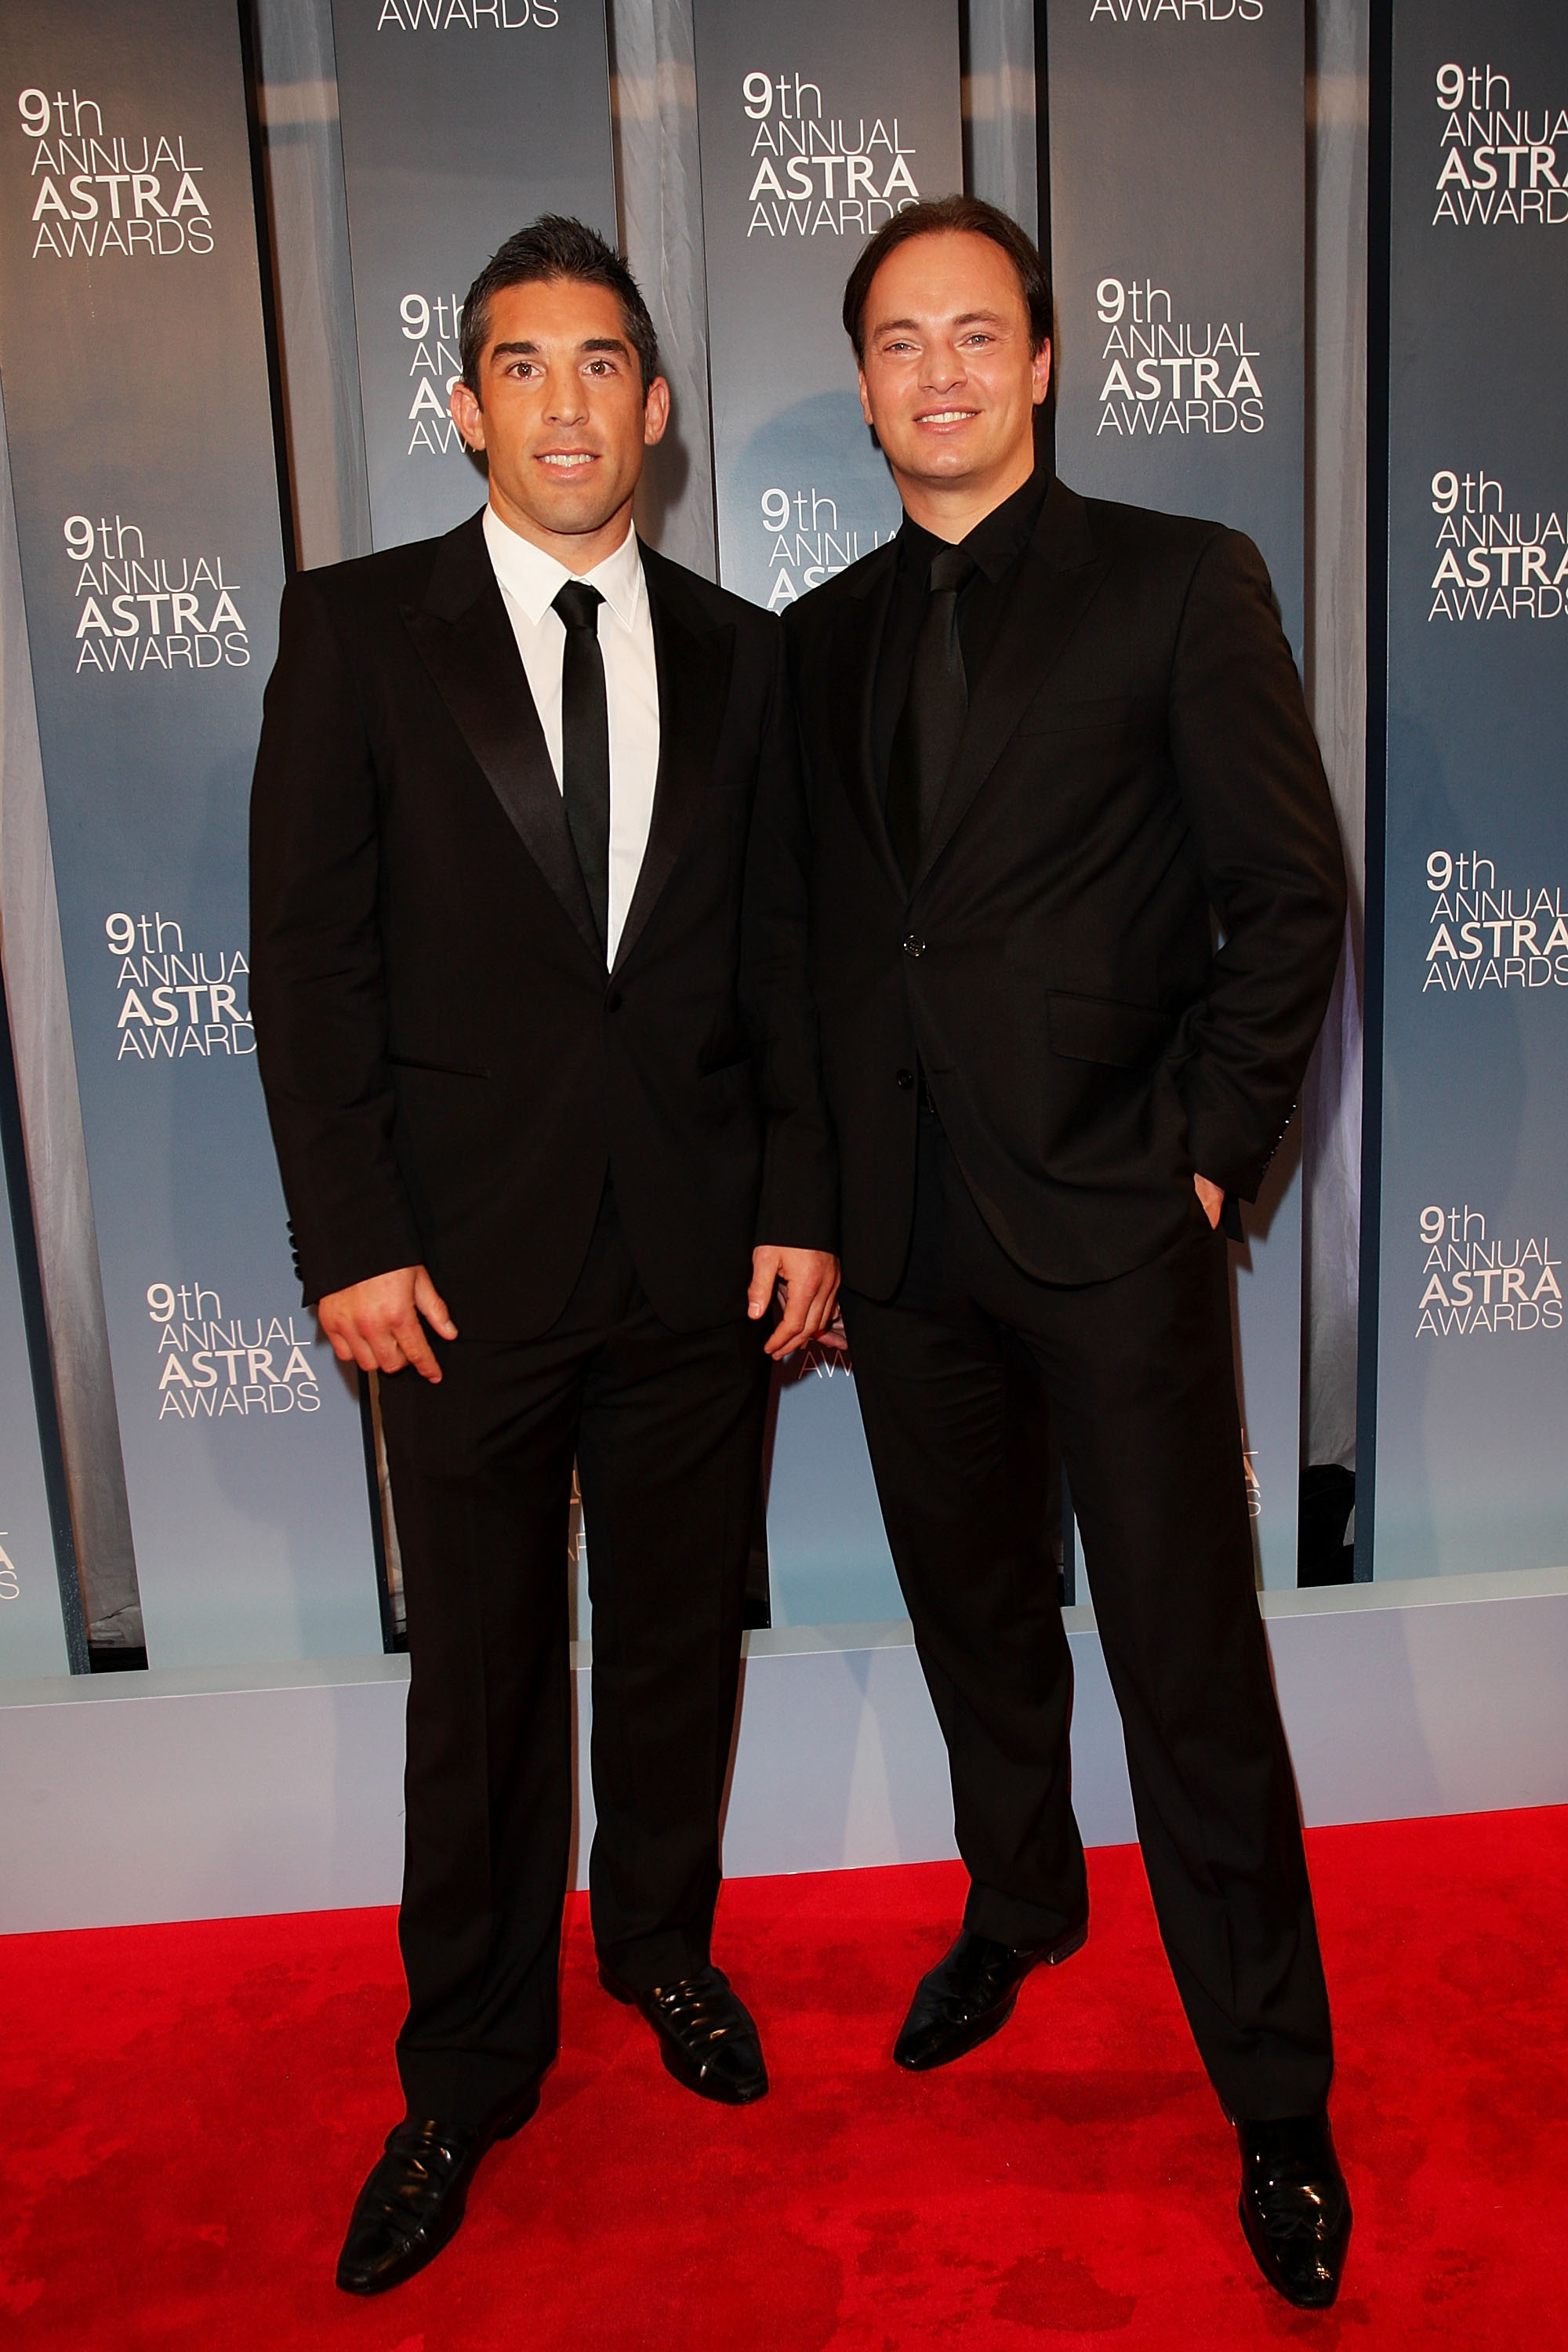 Braith Anasta and Mark Bosnich